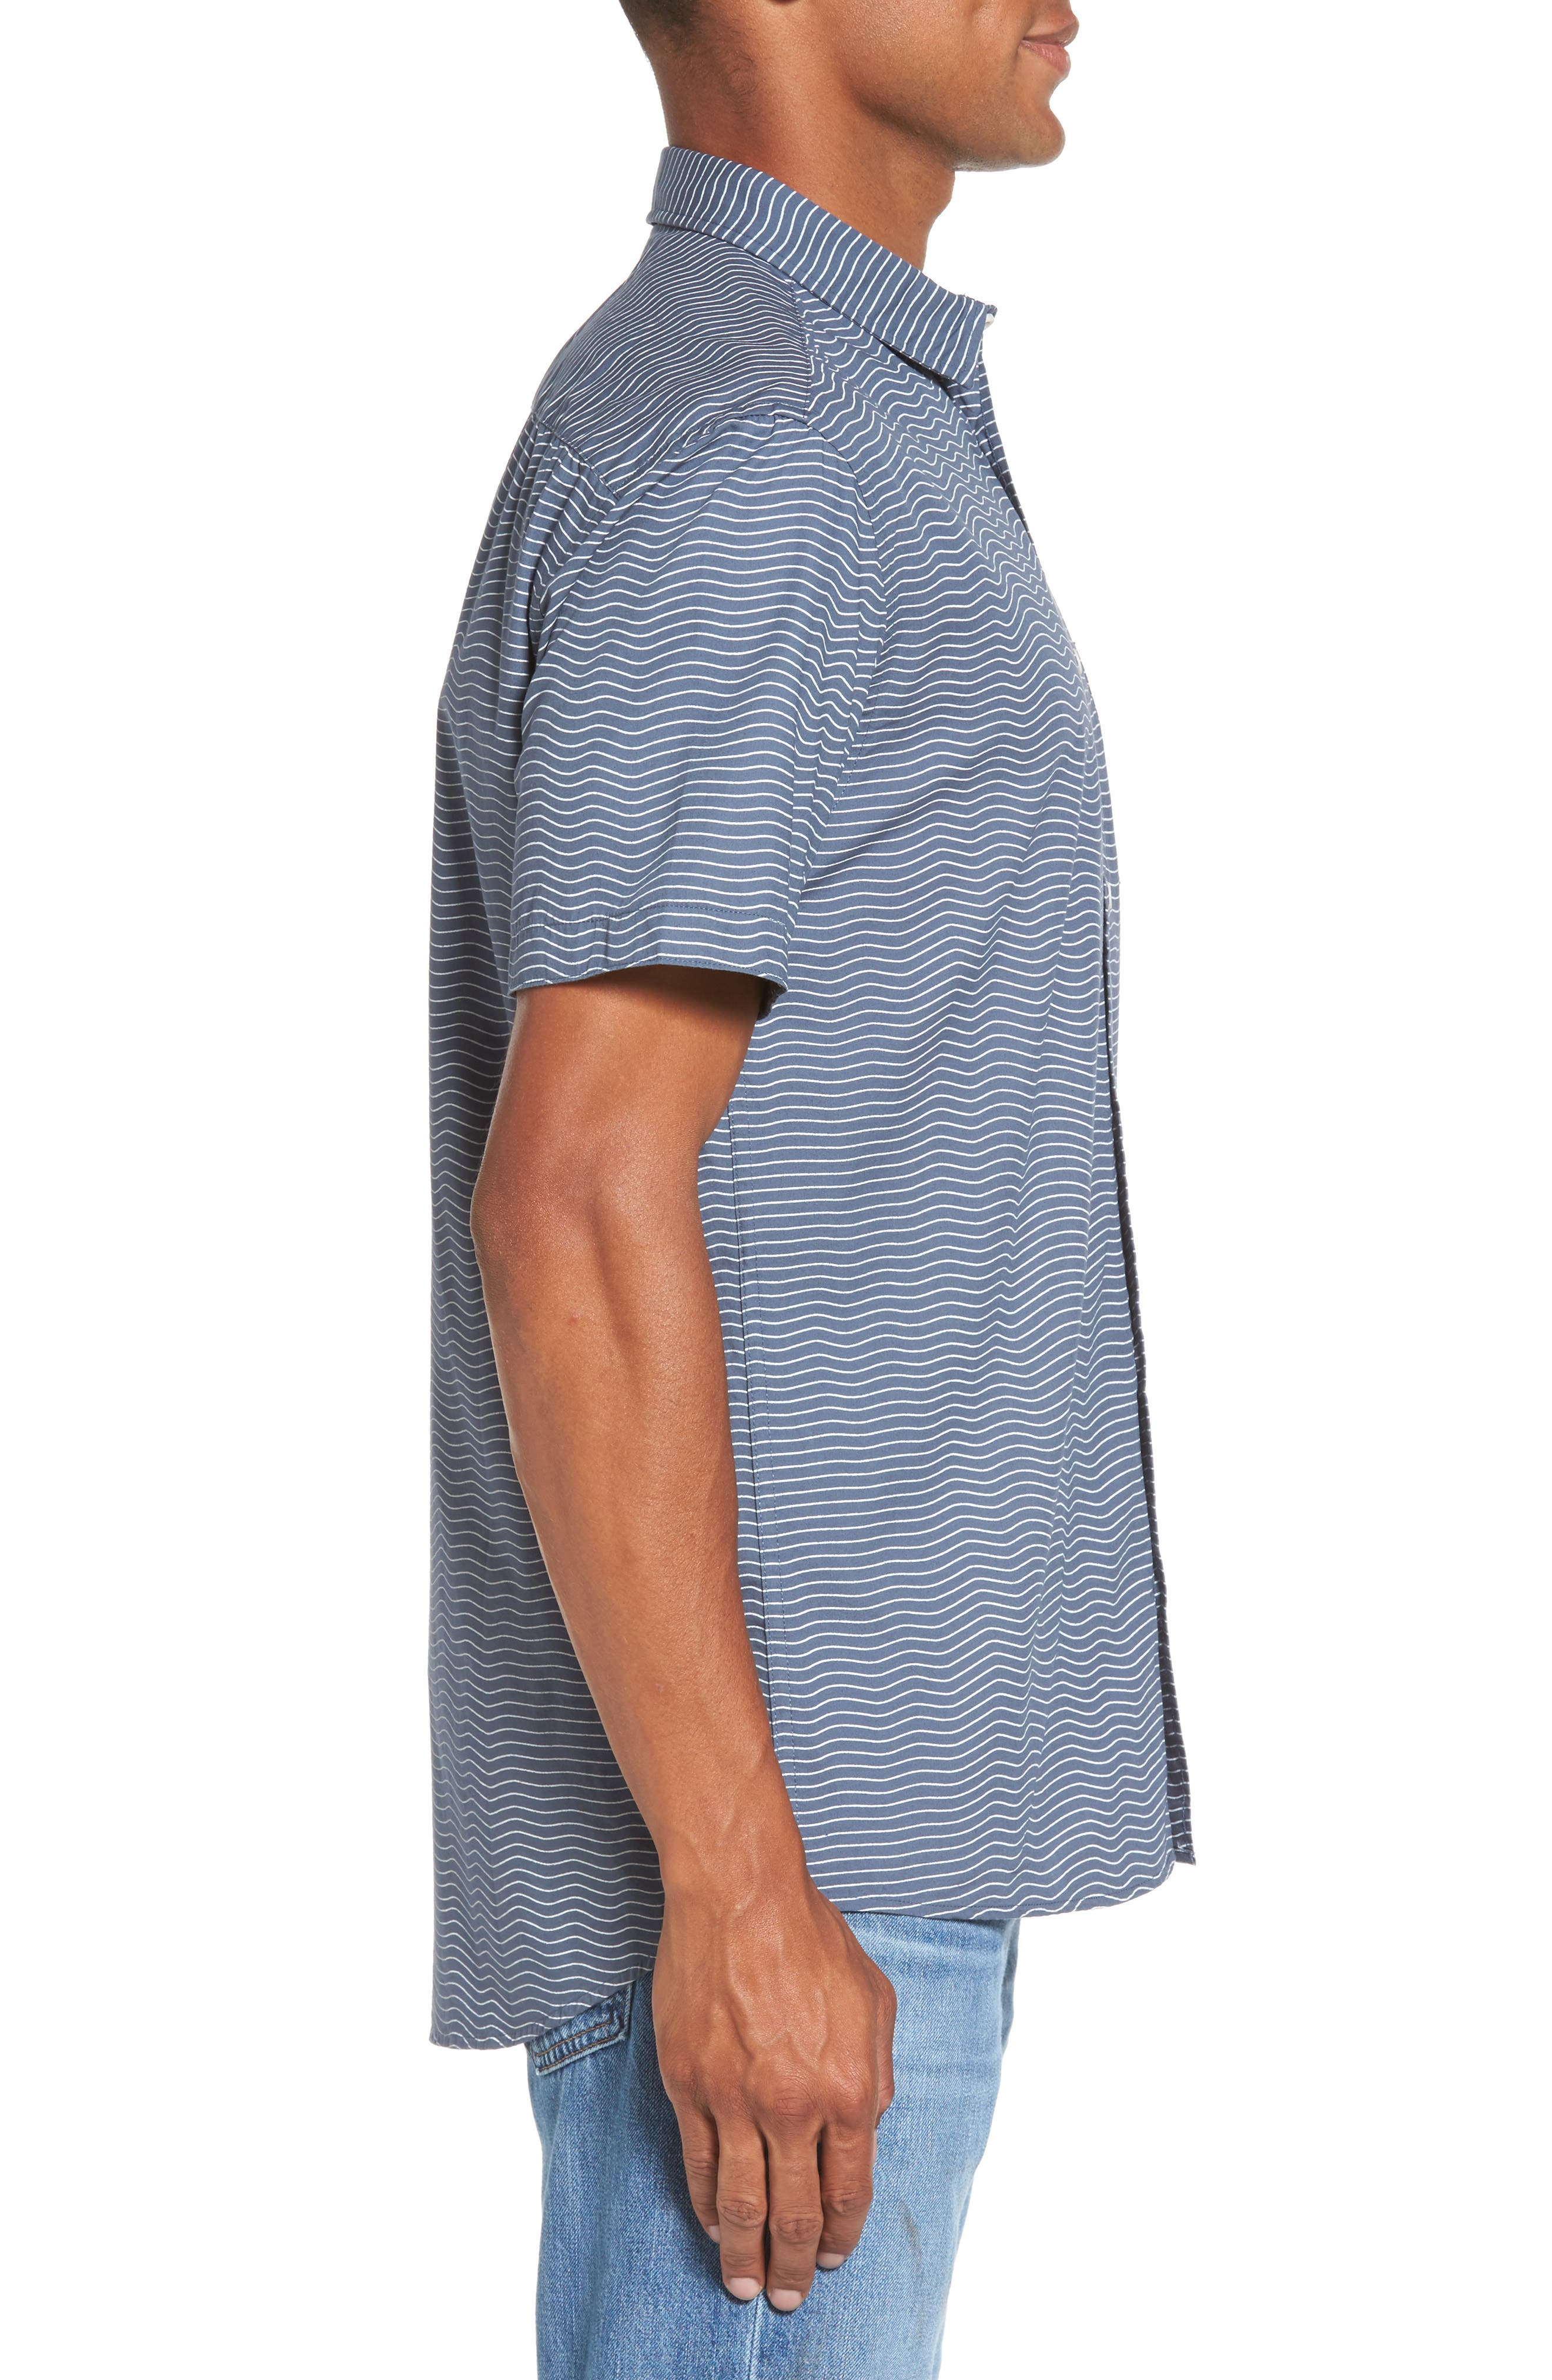 Heat Wave Stripe Shirt,                             Alternate thumbnail 3, color,                             Blue